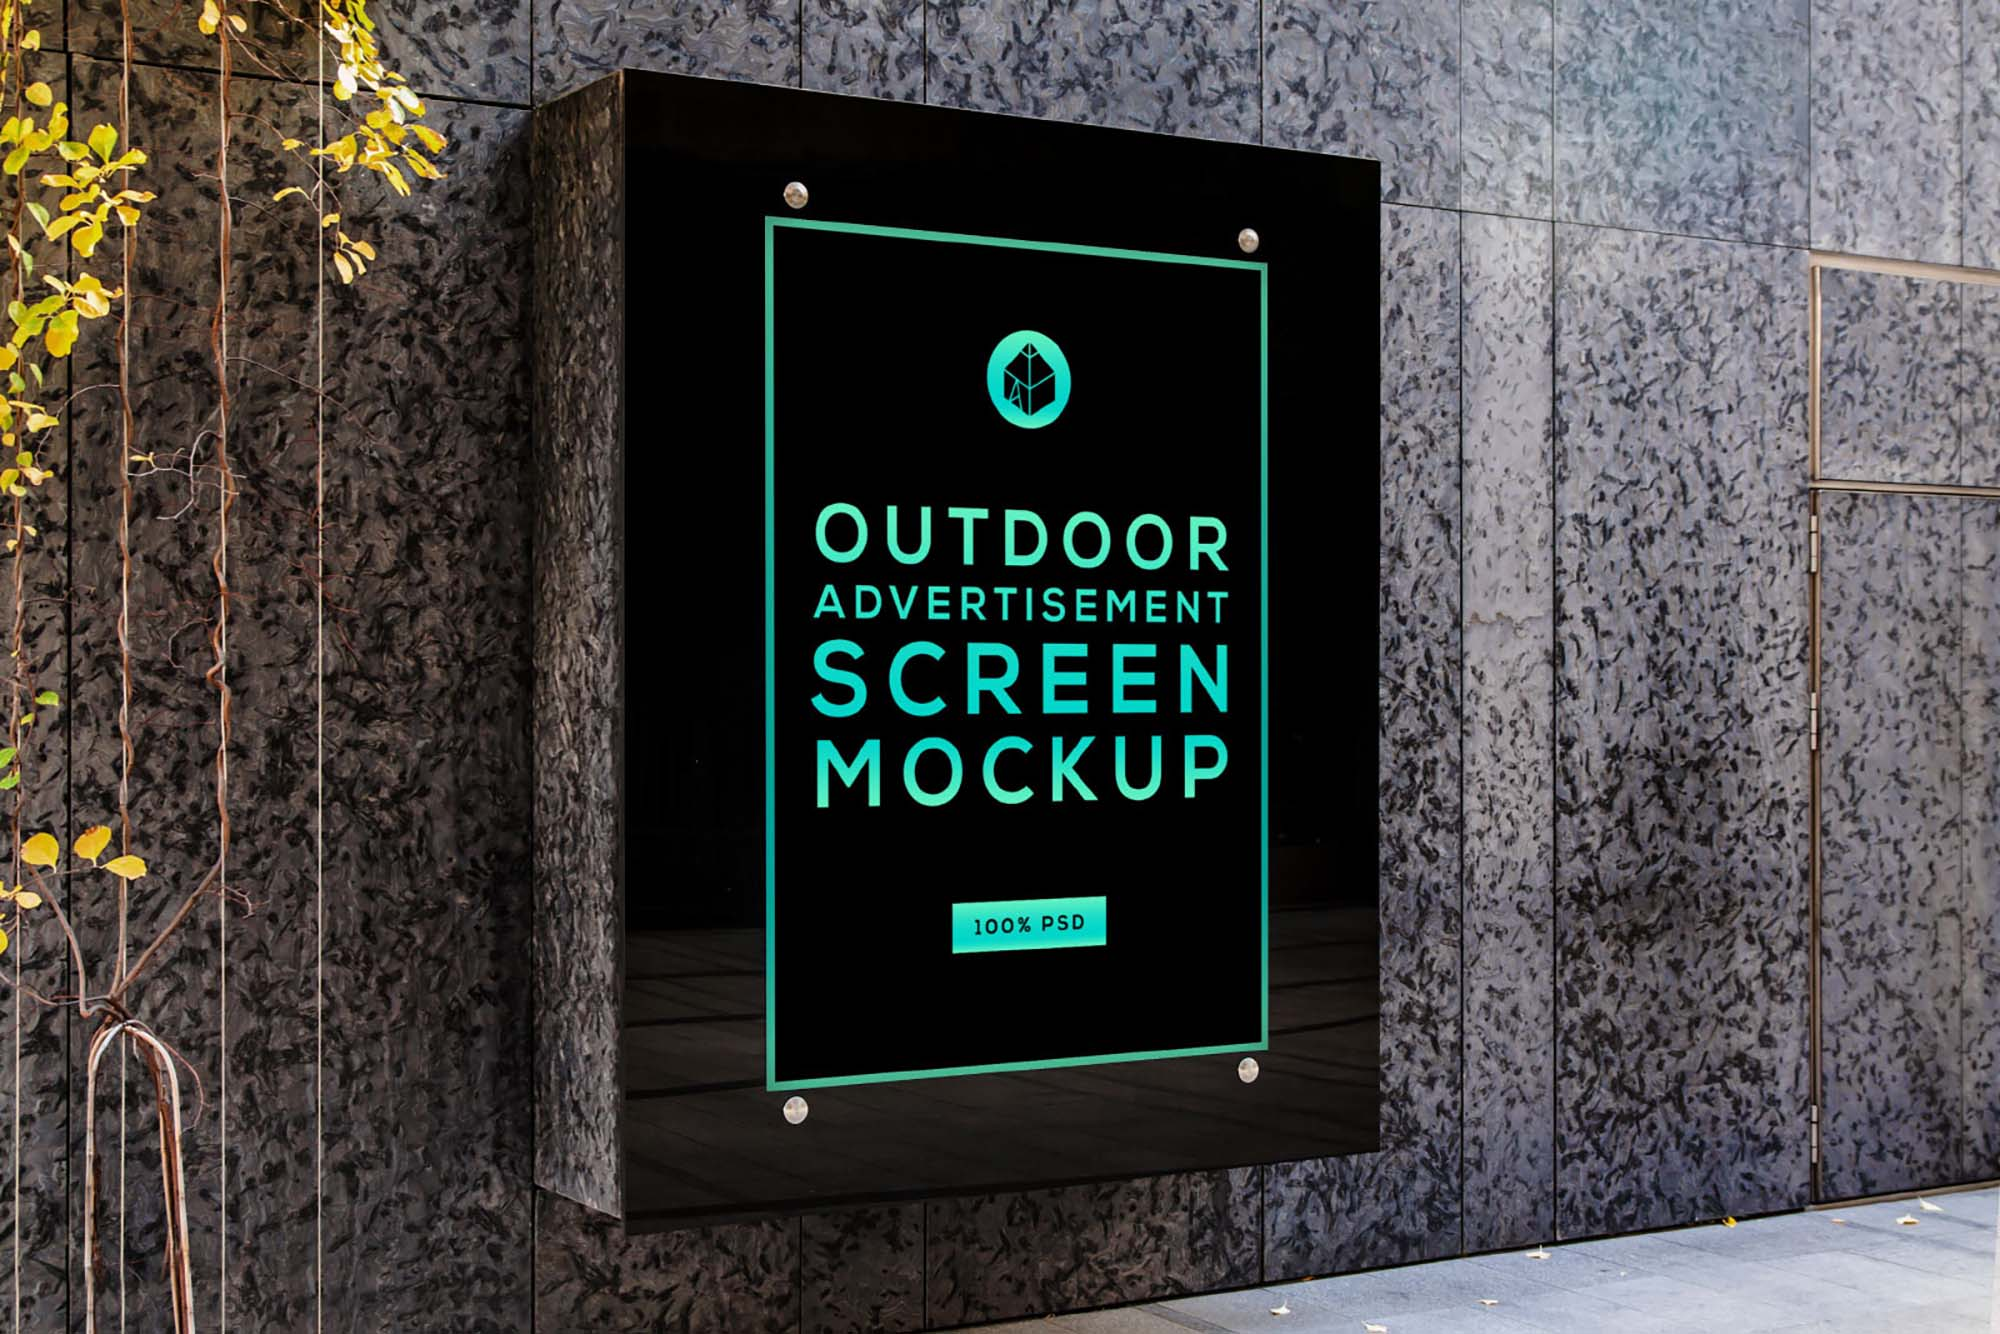 Glass Advertising Screen Mockup